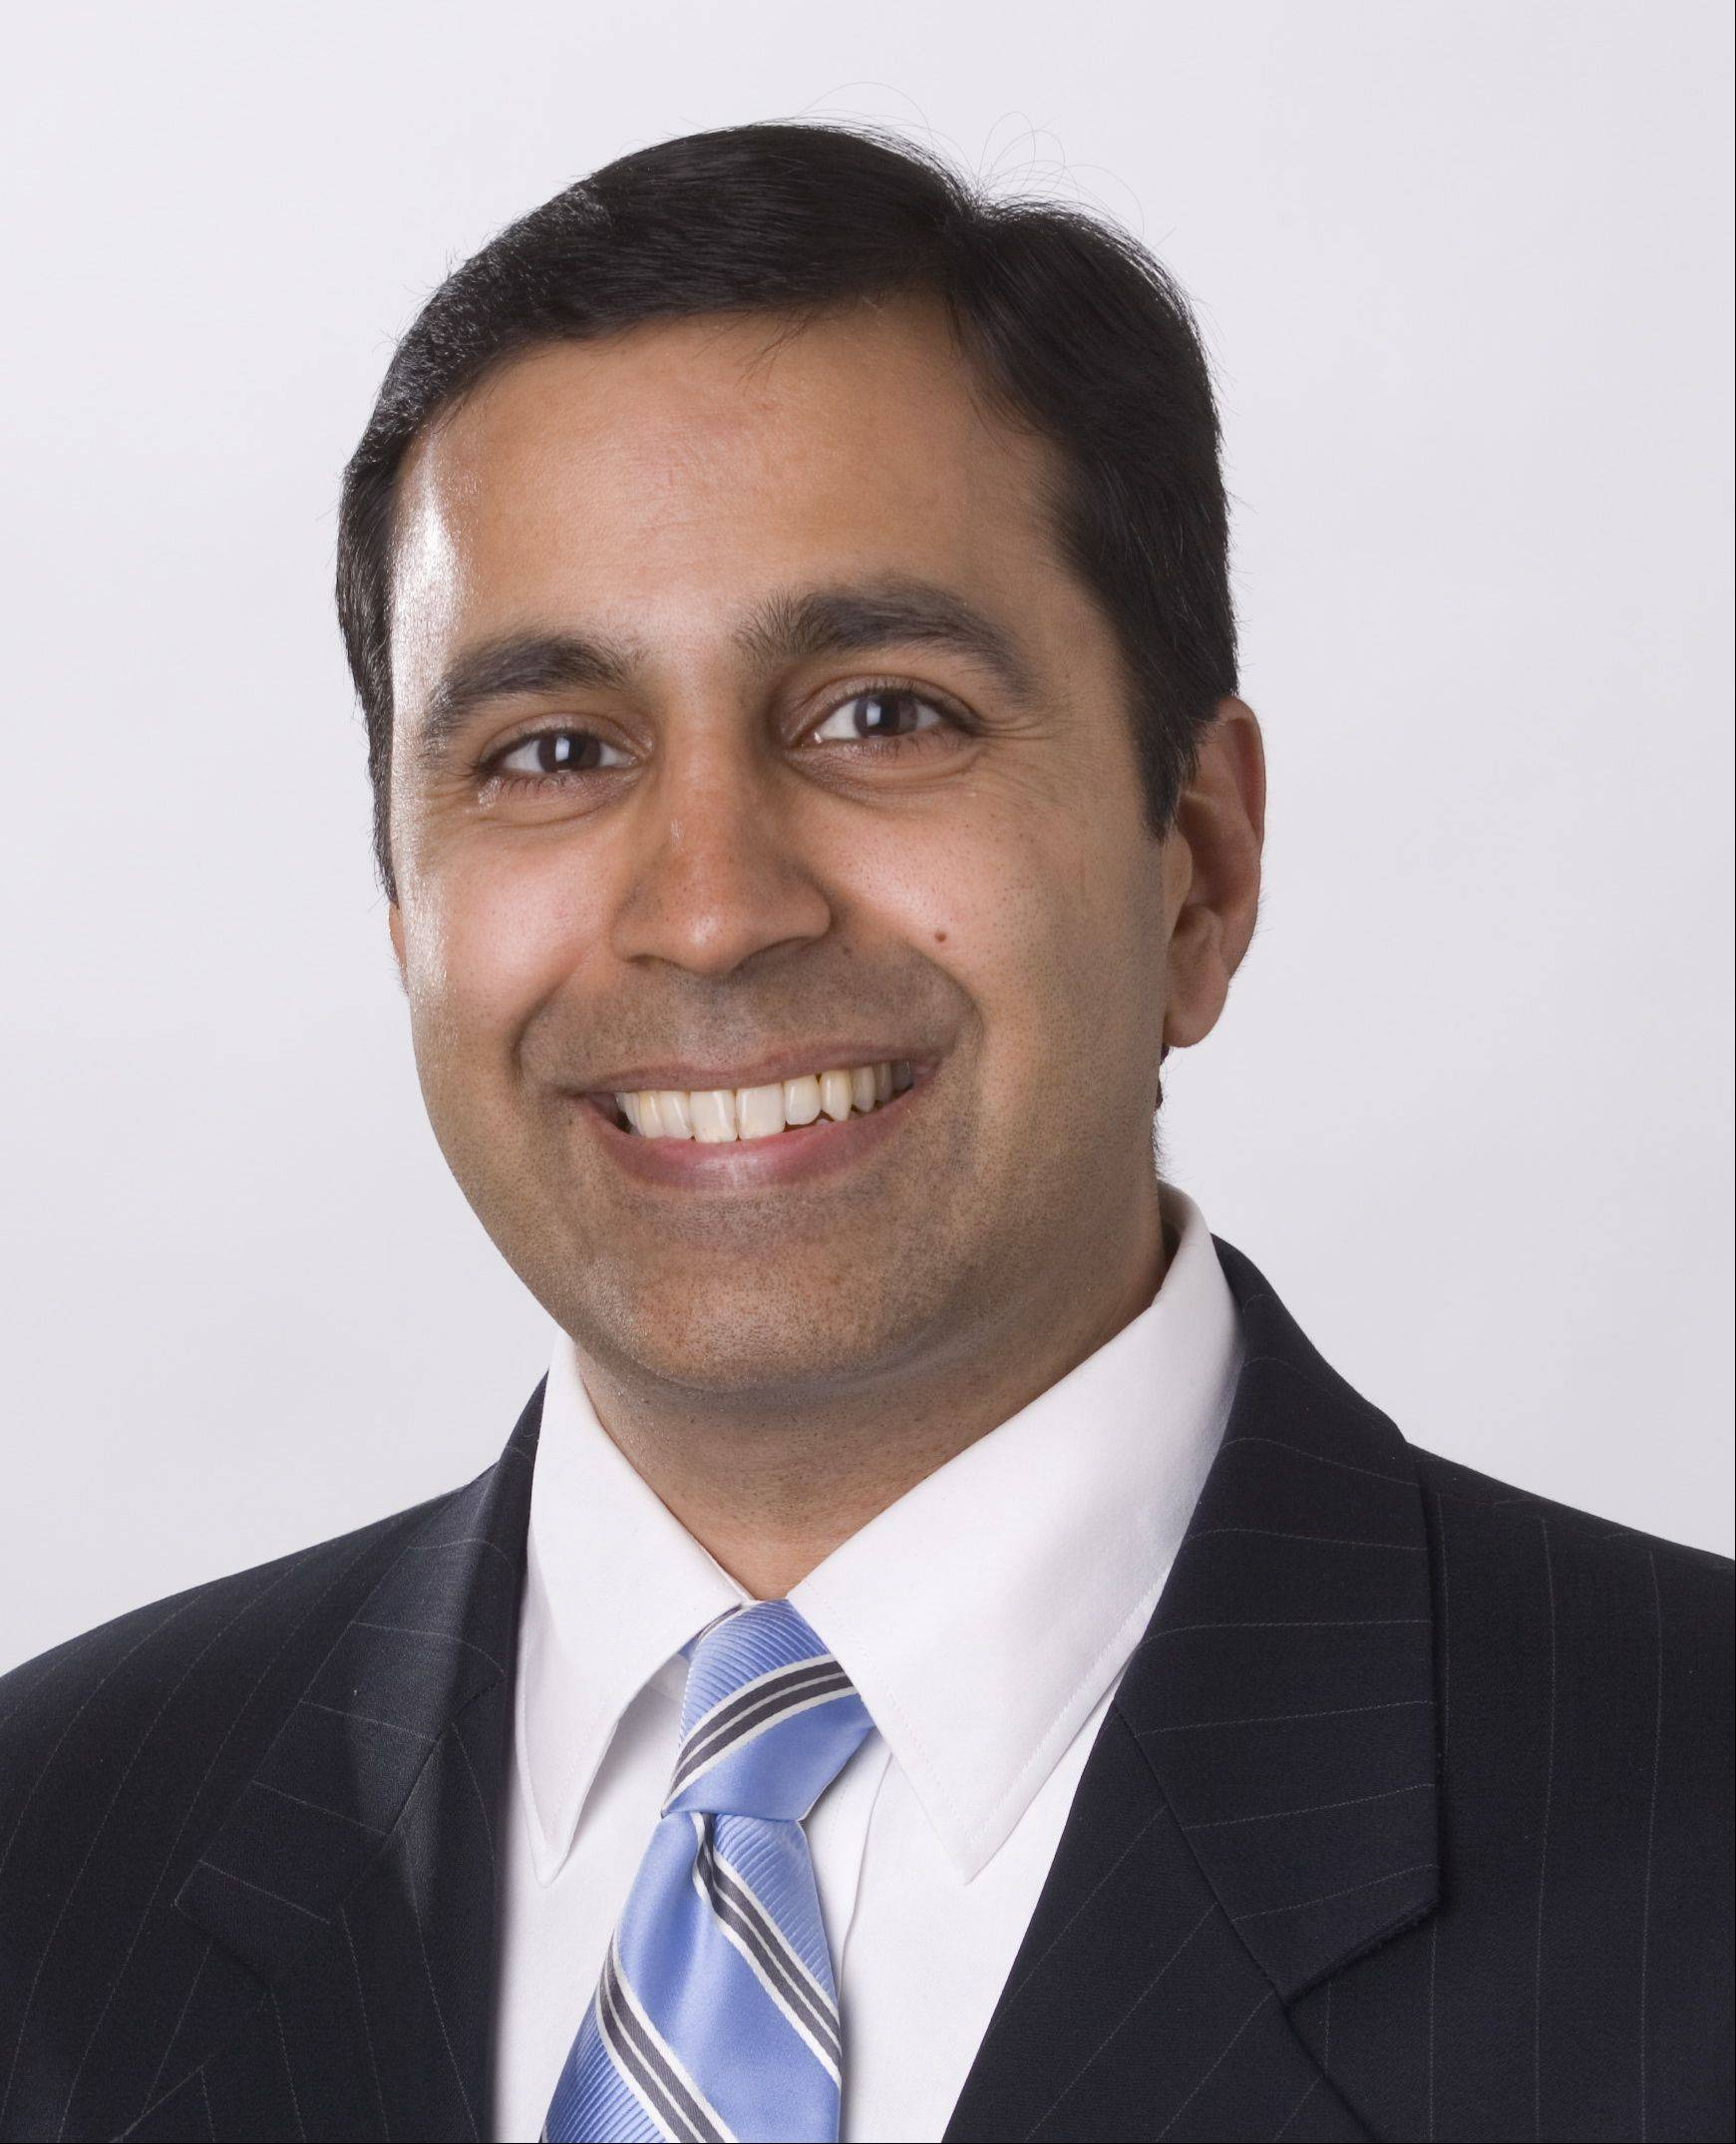 Raja Krishnamoorthi, Democrat, candidate for 8th District U.S. Representative